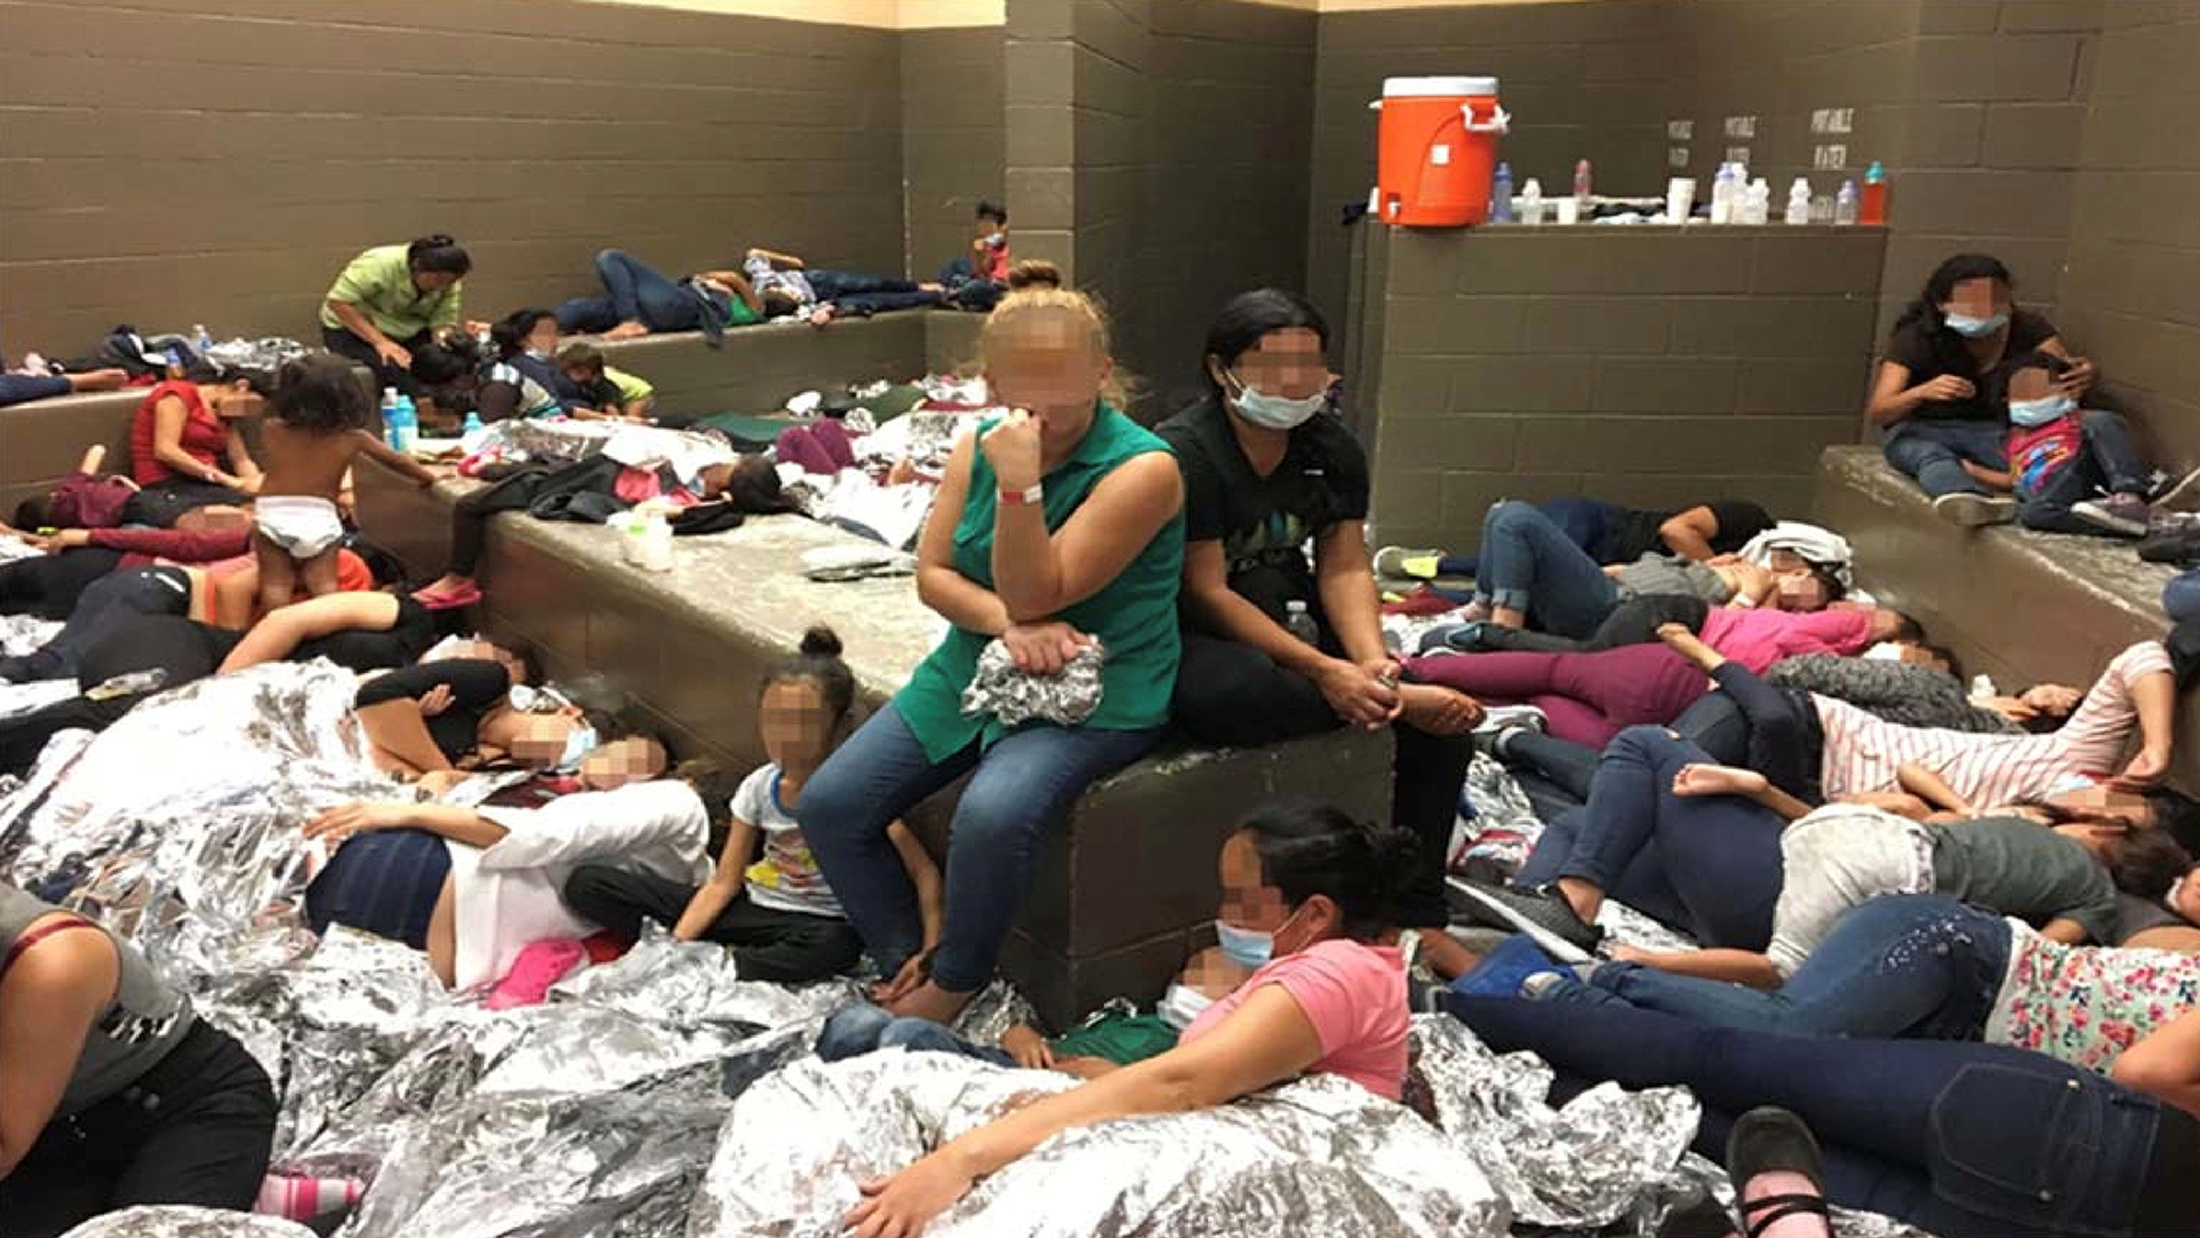 An overcrowded area holding families at a Border Patrol station is seen in a still image from video in Weslaco, Texas, U.S. on June 11, 2019 and released as part of a report by the Department of Homeland Security's Office of Inspector General on July 2, 2019. Picture pixelated at source. Office of Inspector General/DHS/Handout via REUTERS